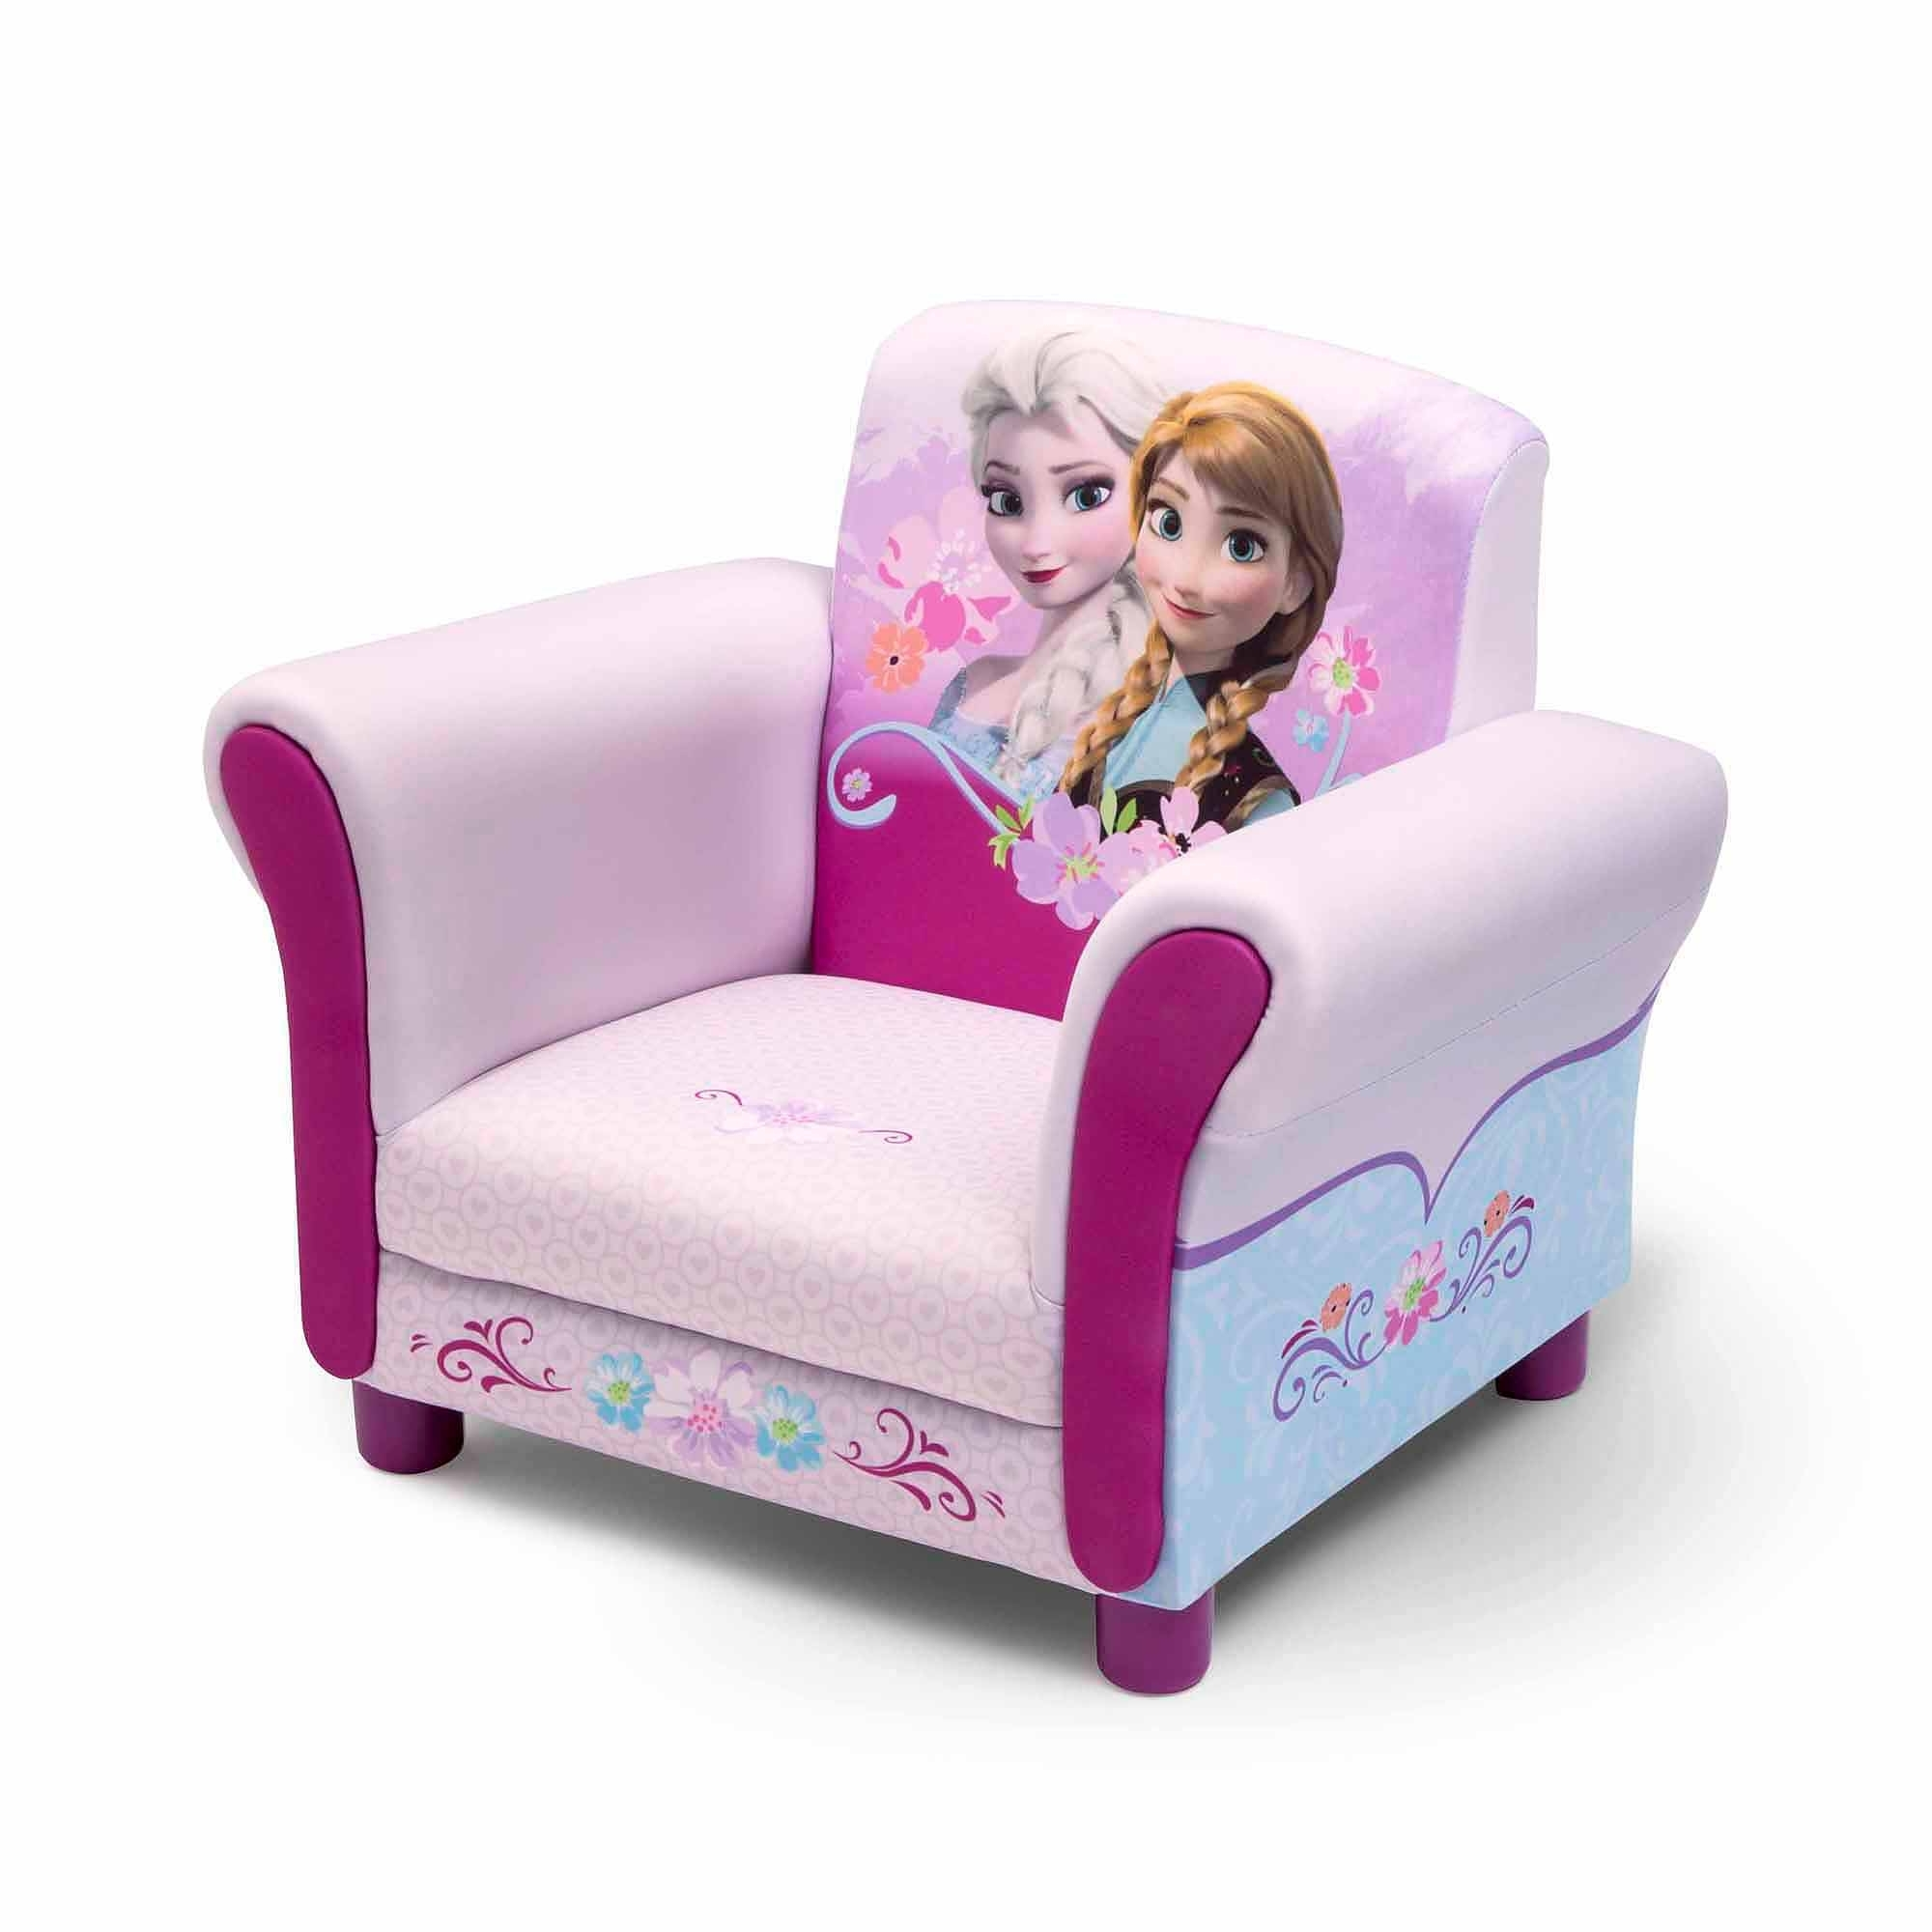 Most Popular Disney Sofa Chairs Pertaining To Disney Frozen Upholstered Chair – Walmart (View 3 of 15)